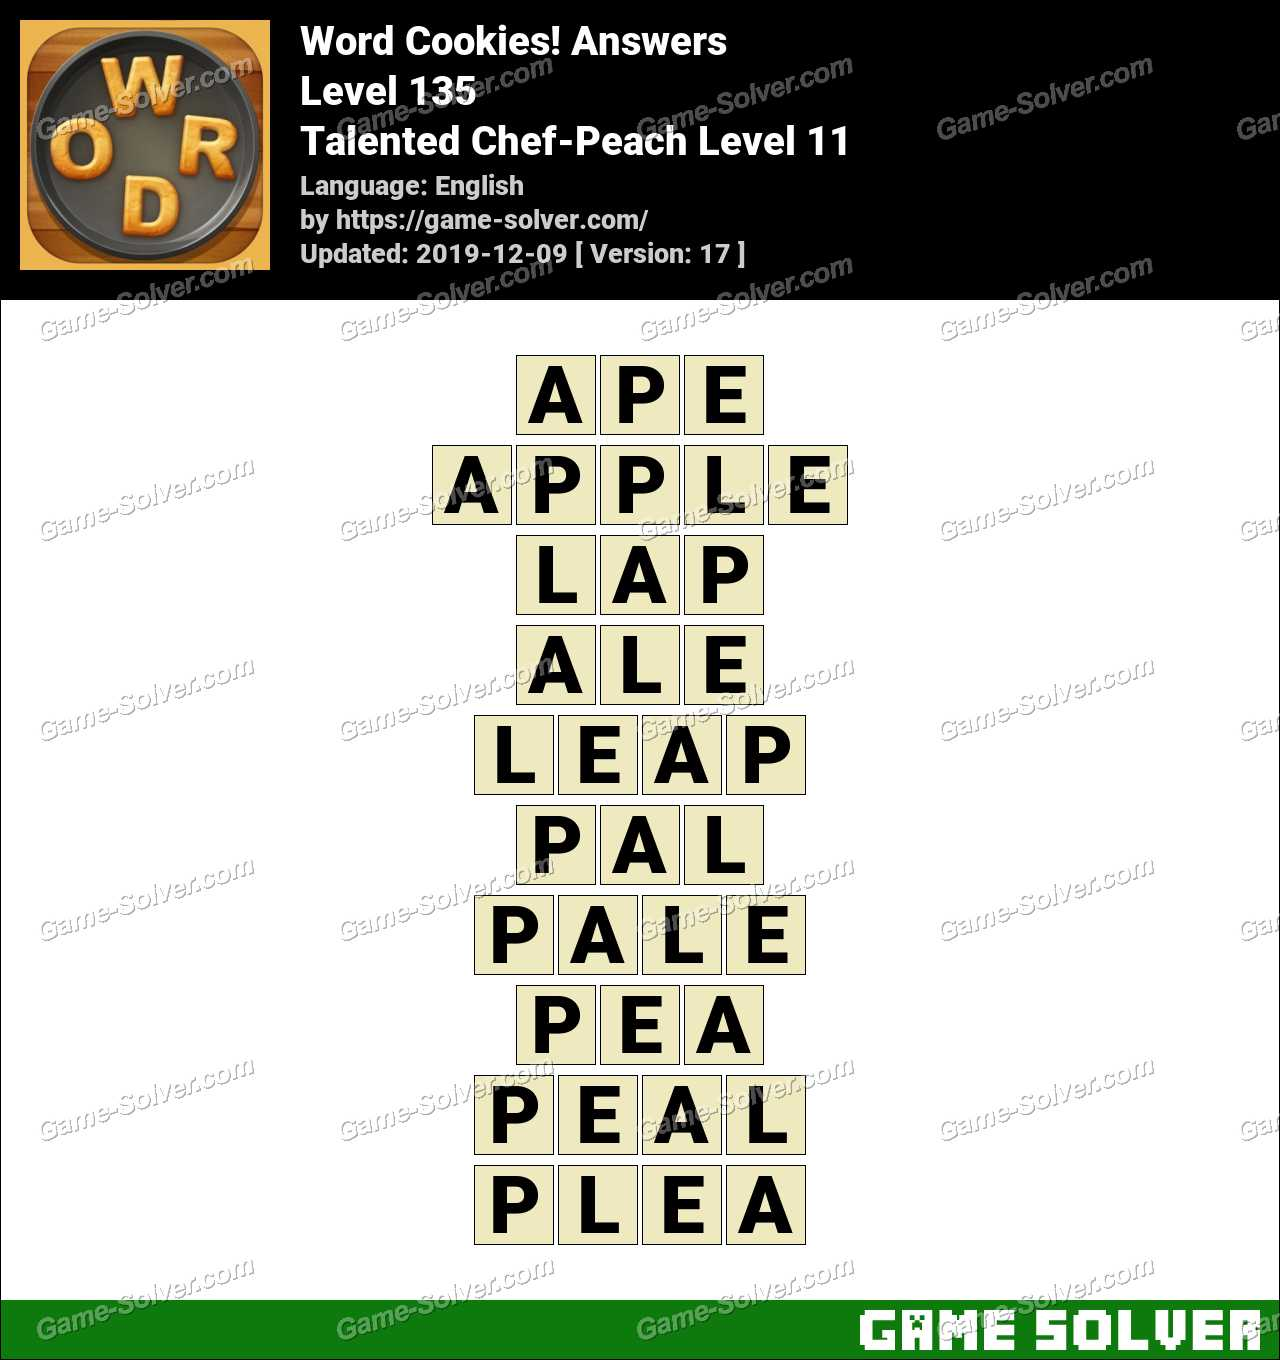 Word Cookies Talented Chef-Peach Level 11 Answers